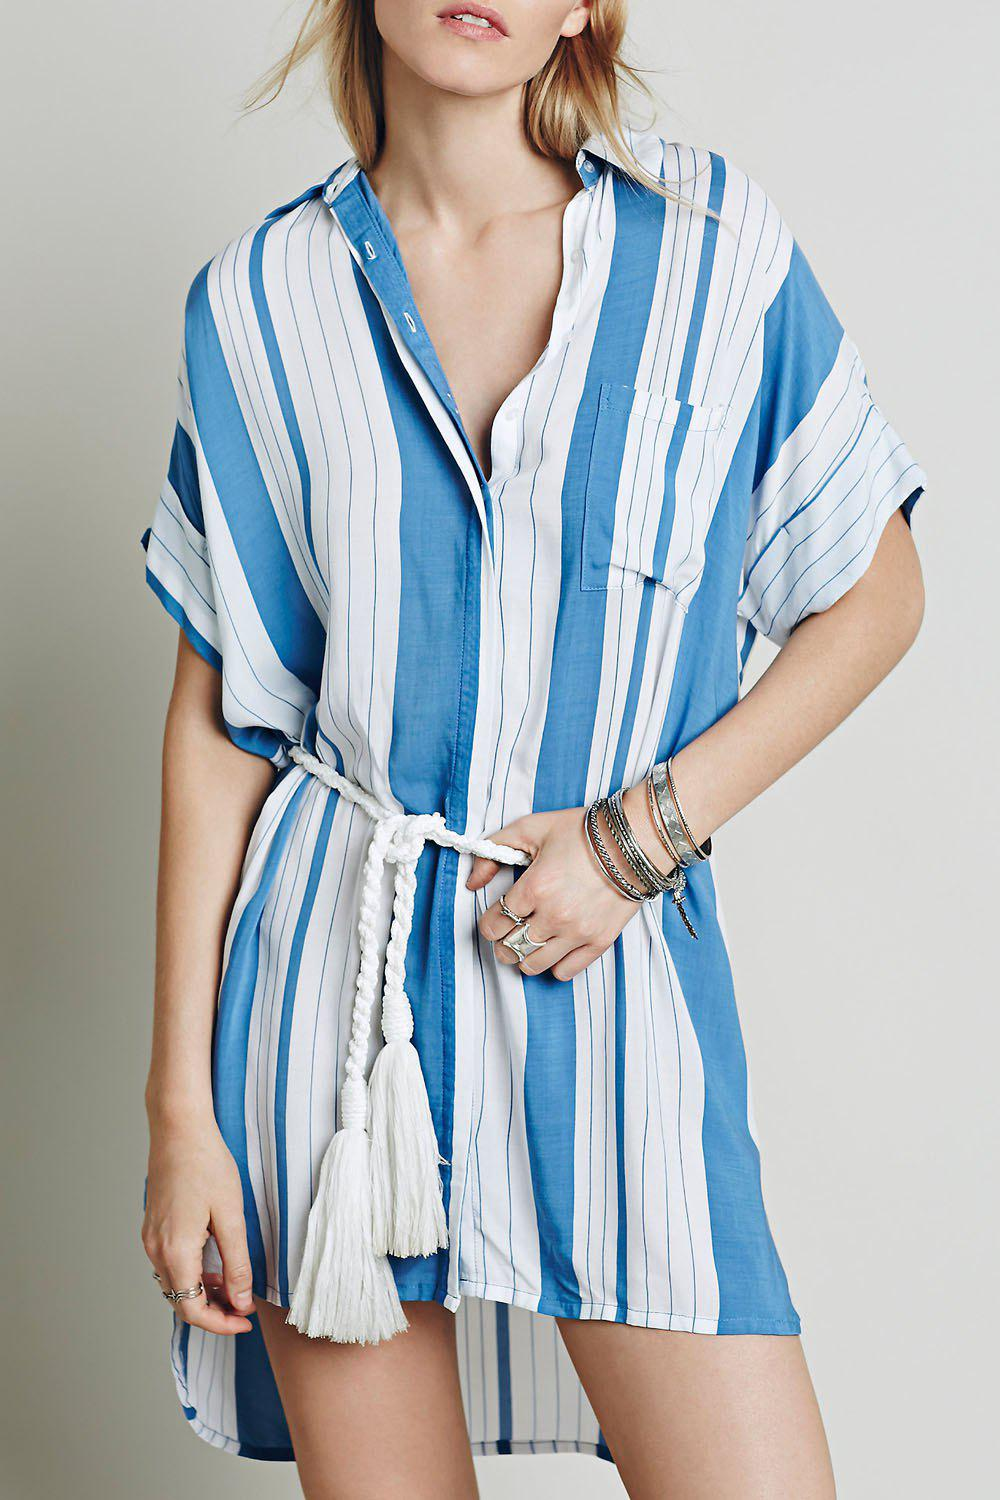 Stylish White Blue Batwing Sleeve Striped High Low Women's Dress - BLUE/WHITE L